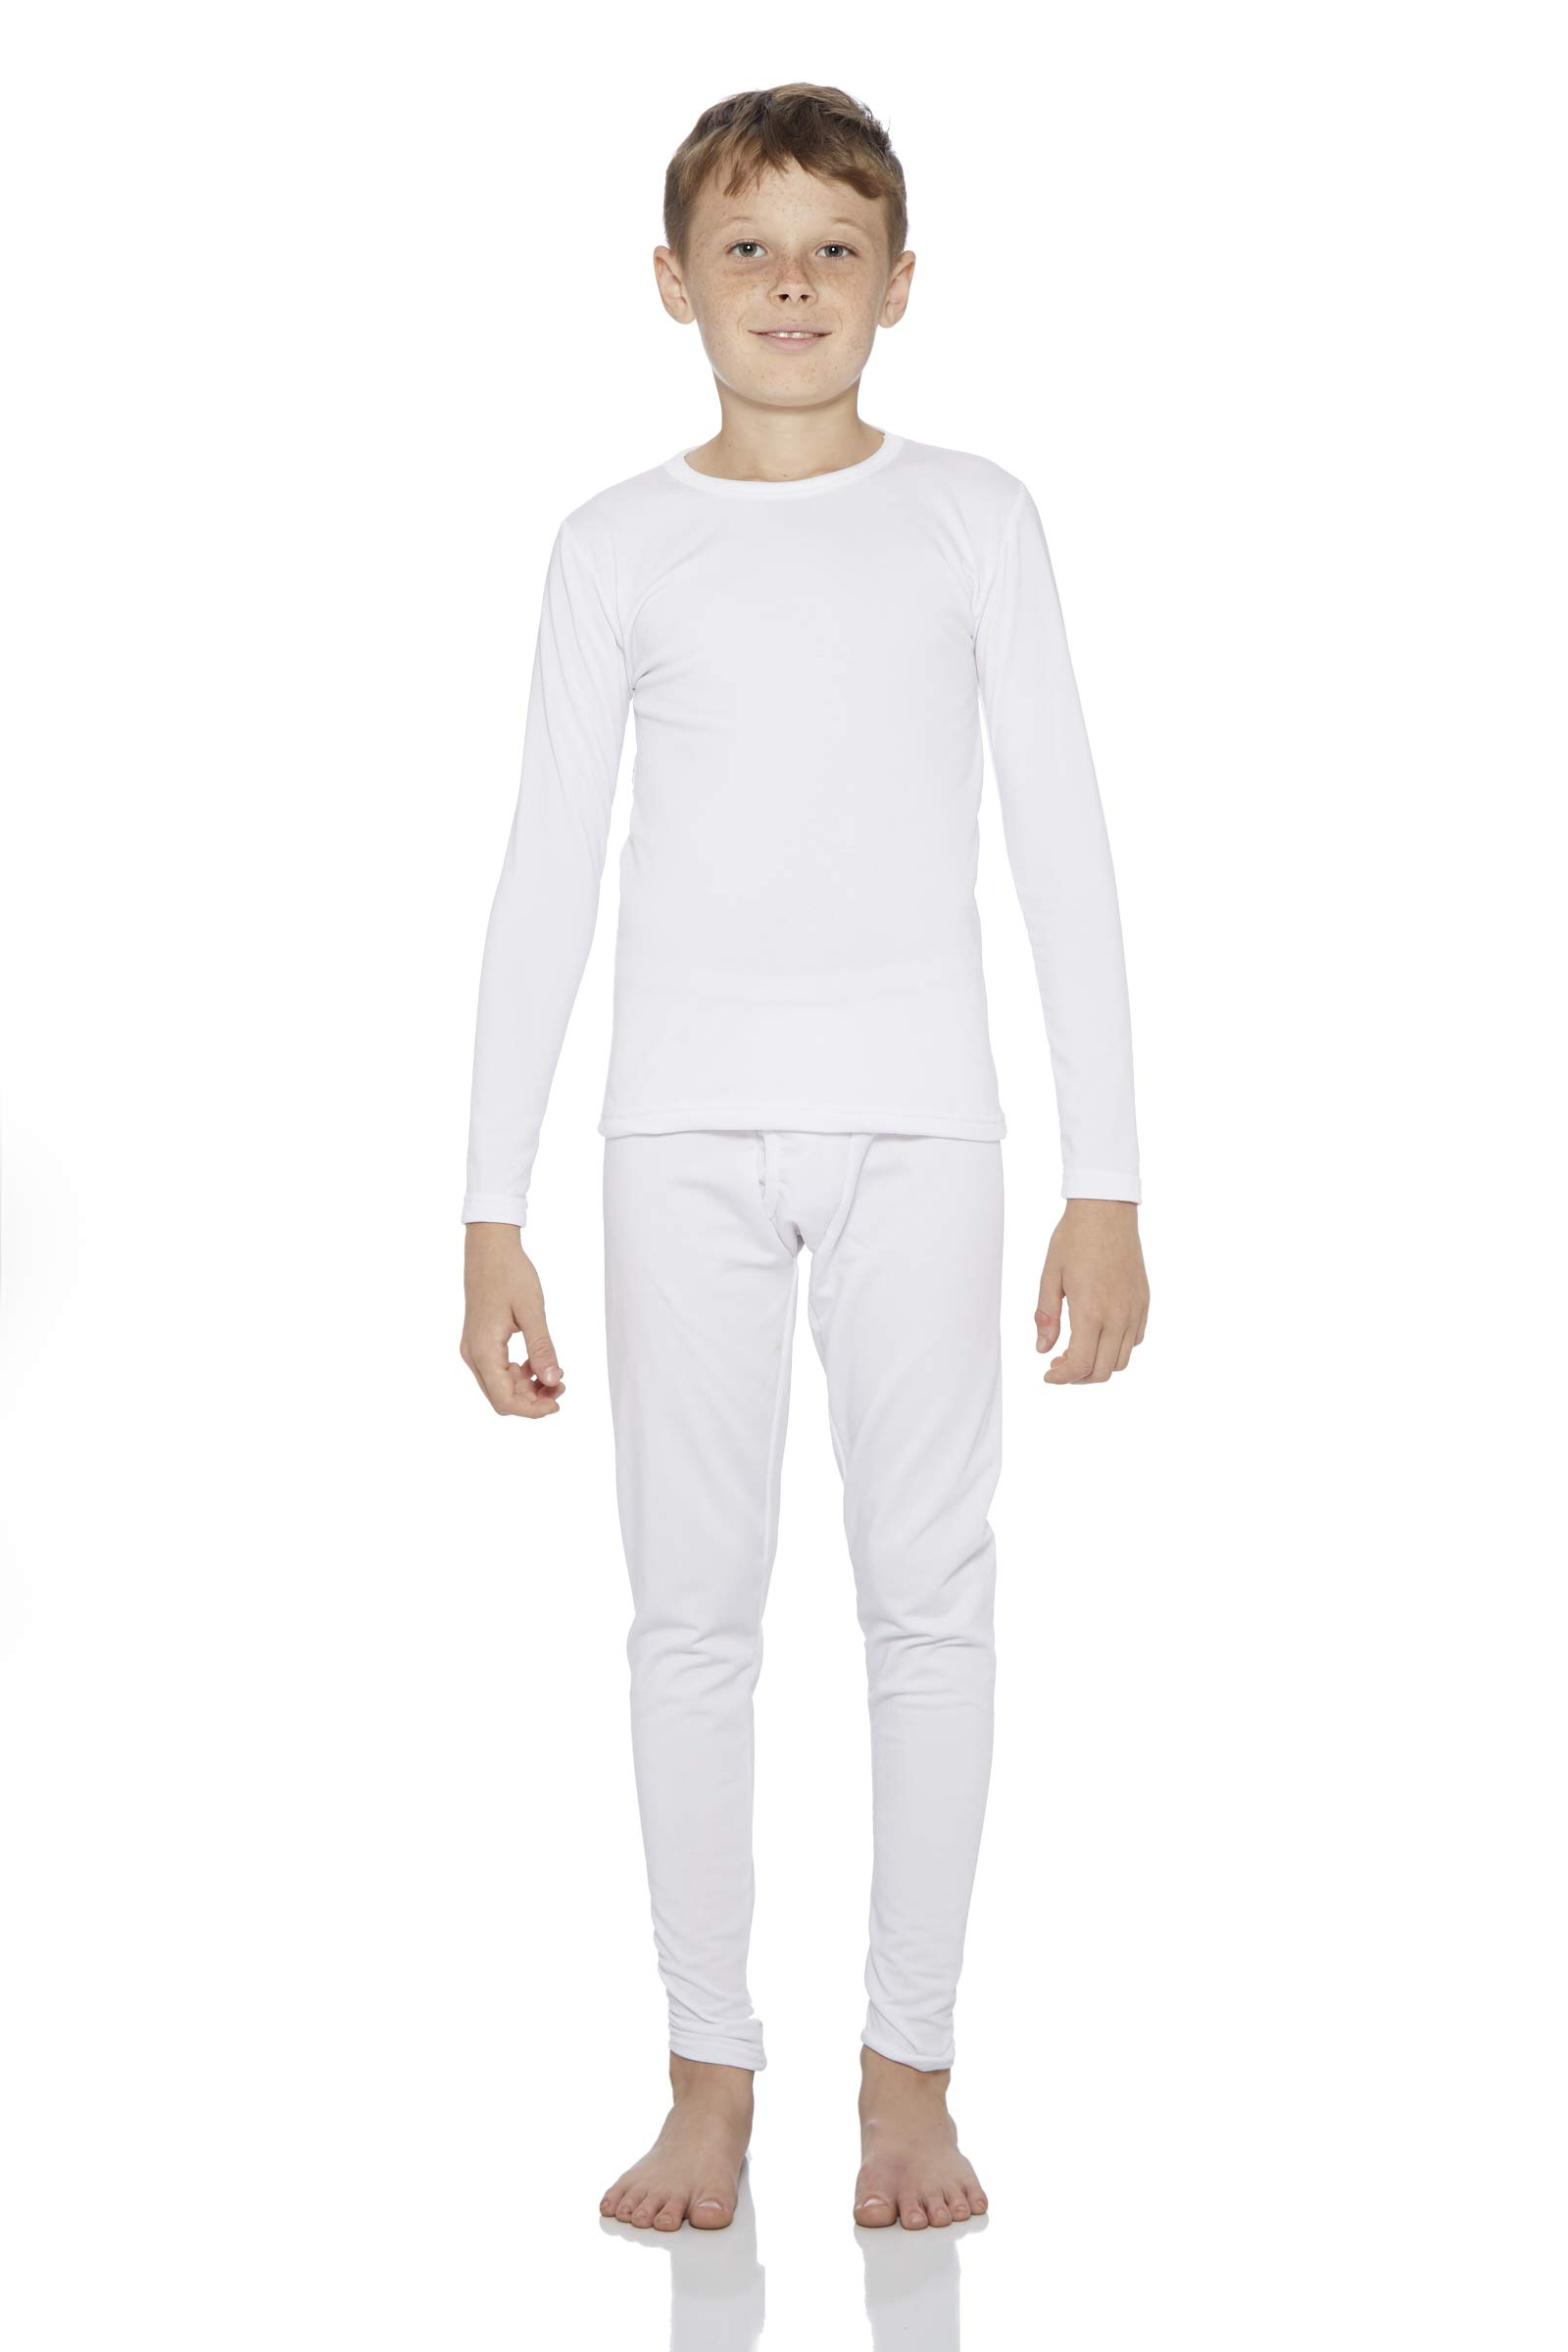 Rocky Thermal Underwear for Boys Fleece Lined Thermals Kids Base Layer Long John Set White by Rocky